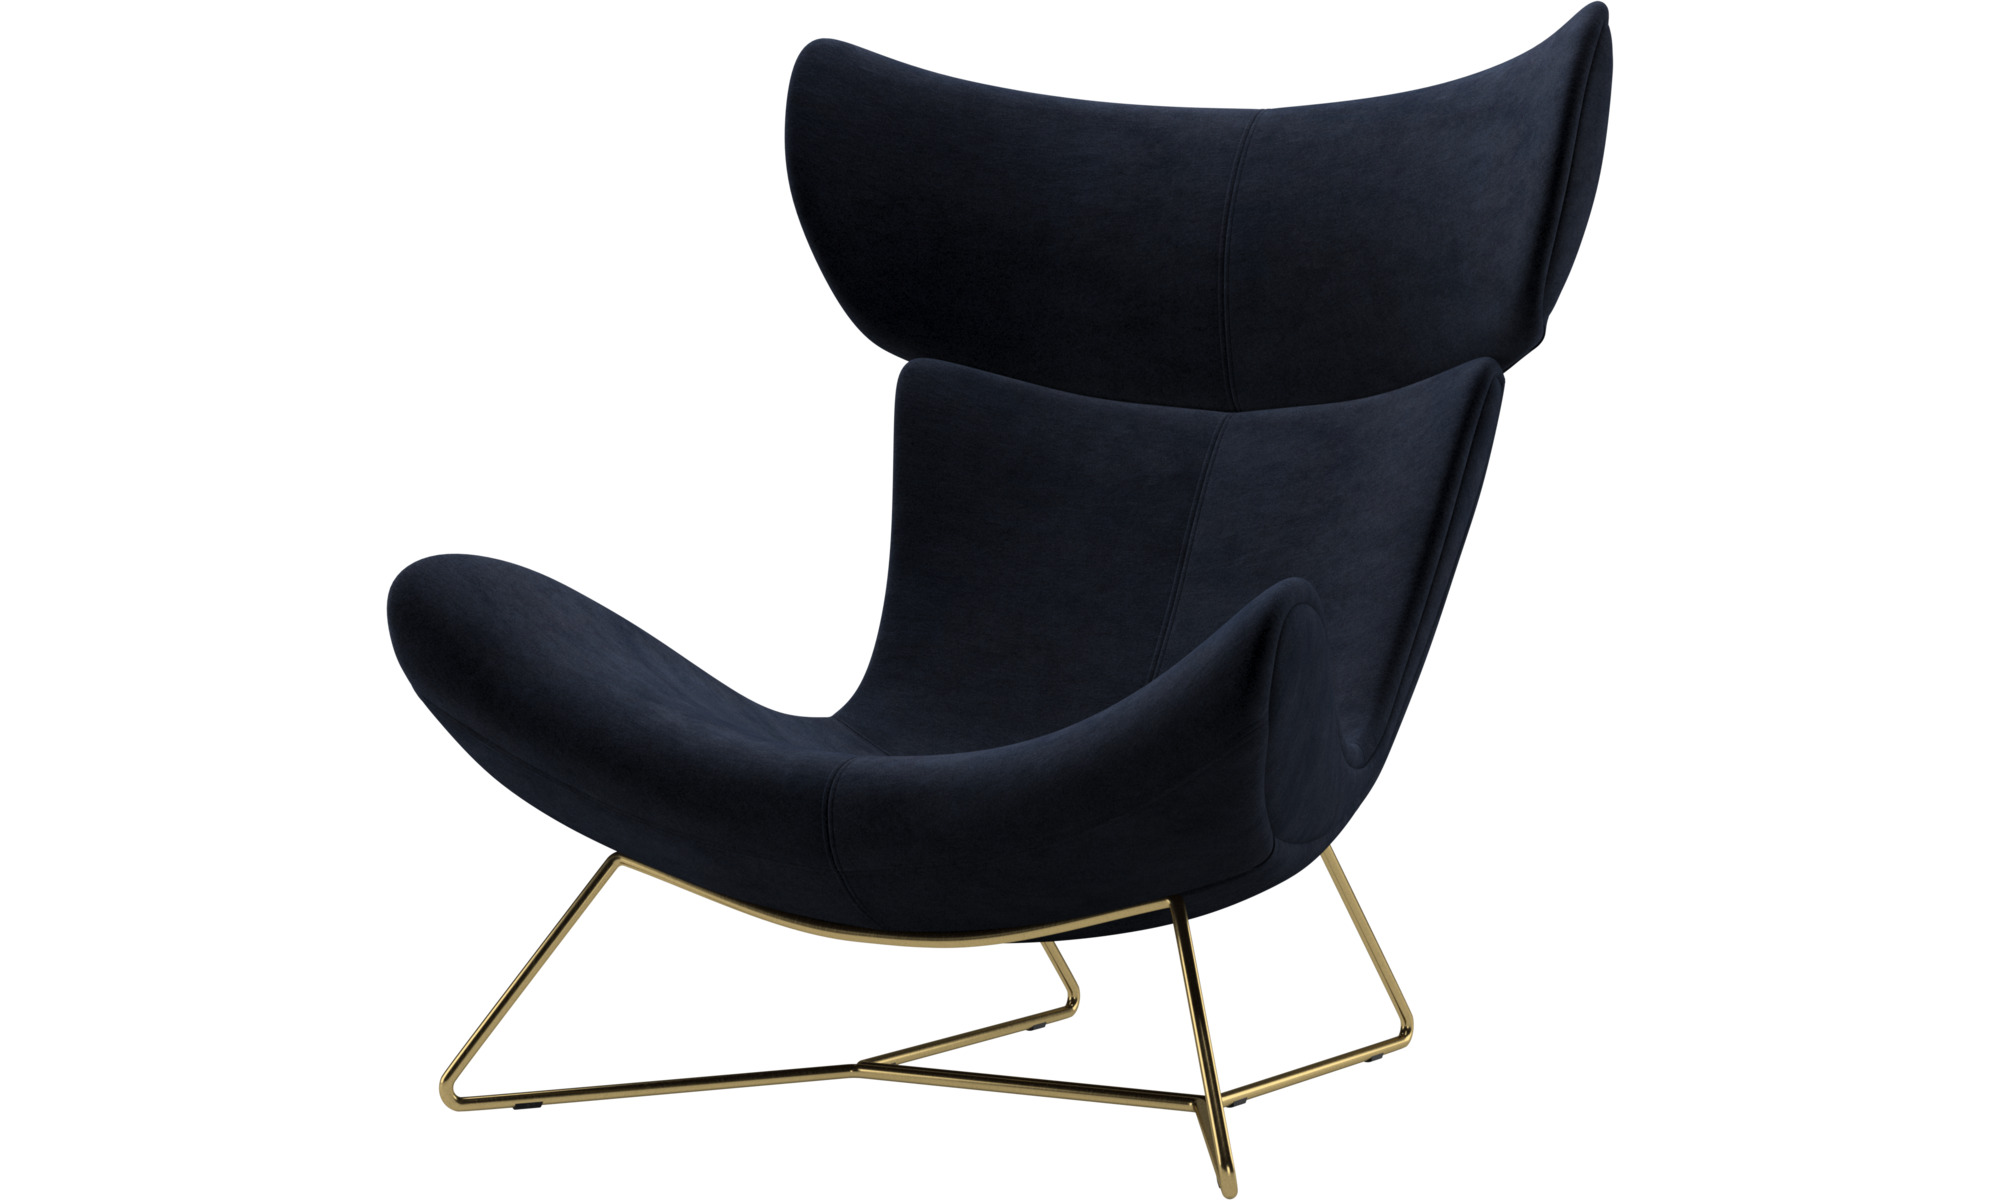 Imola Sessel Gebraucht Armchairs Imola Chair Boconcept